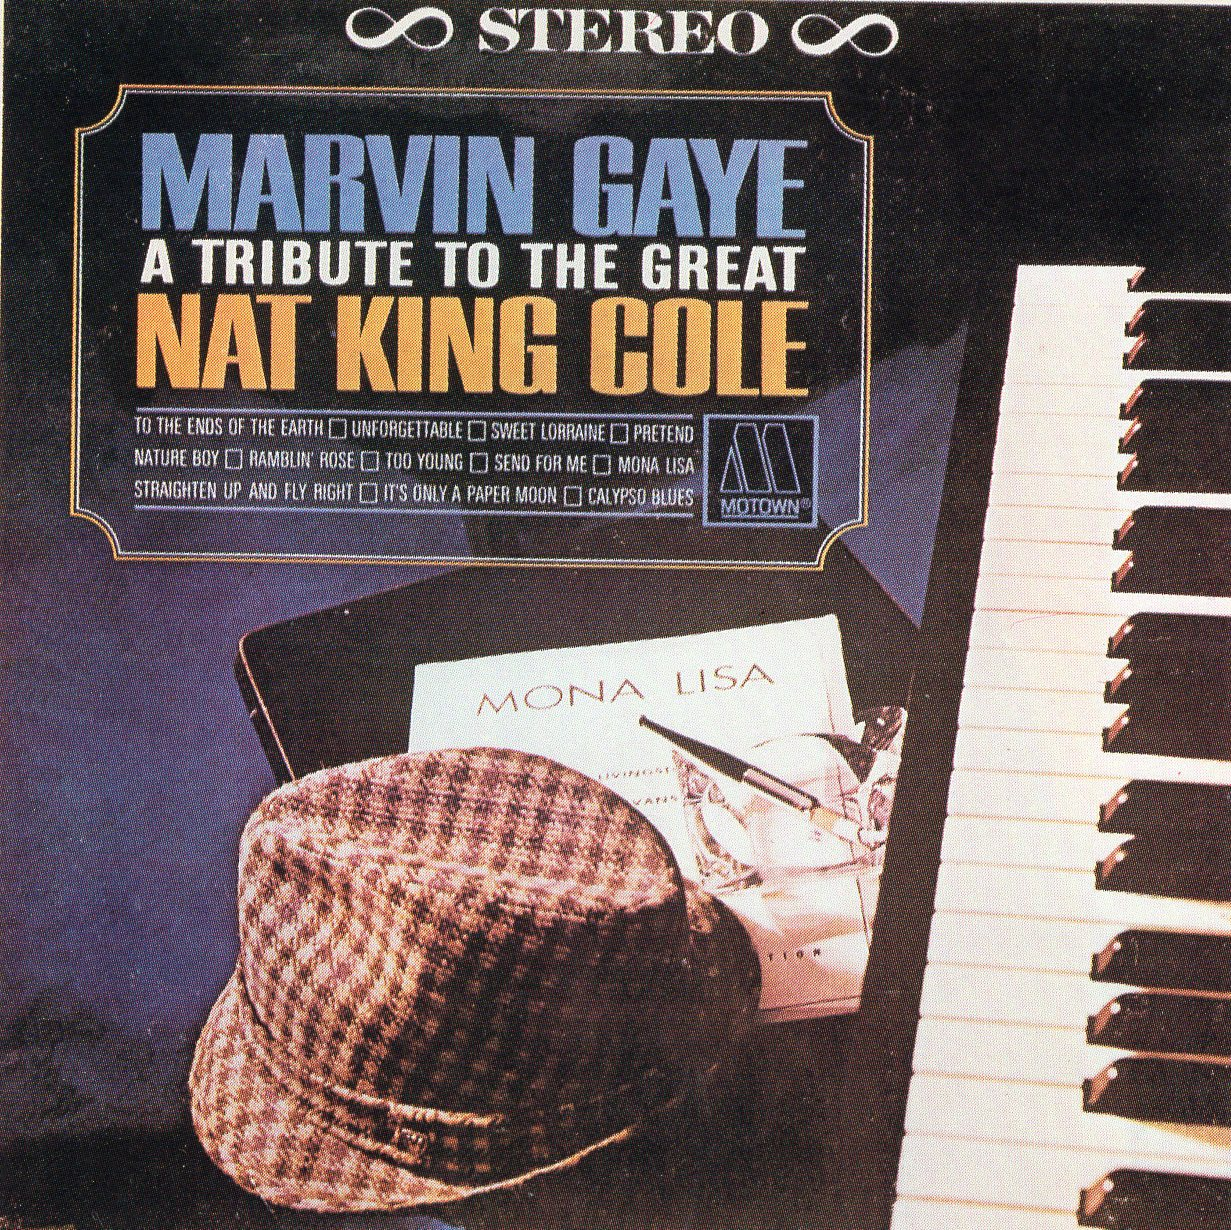 """A Tribute to the Great"" Marvin Gays, Nat King Cole"